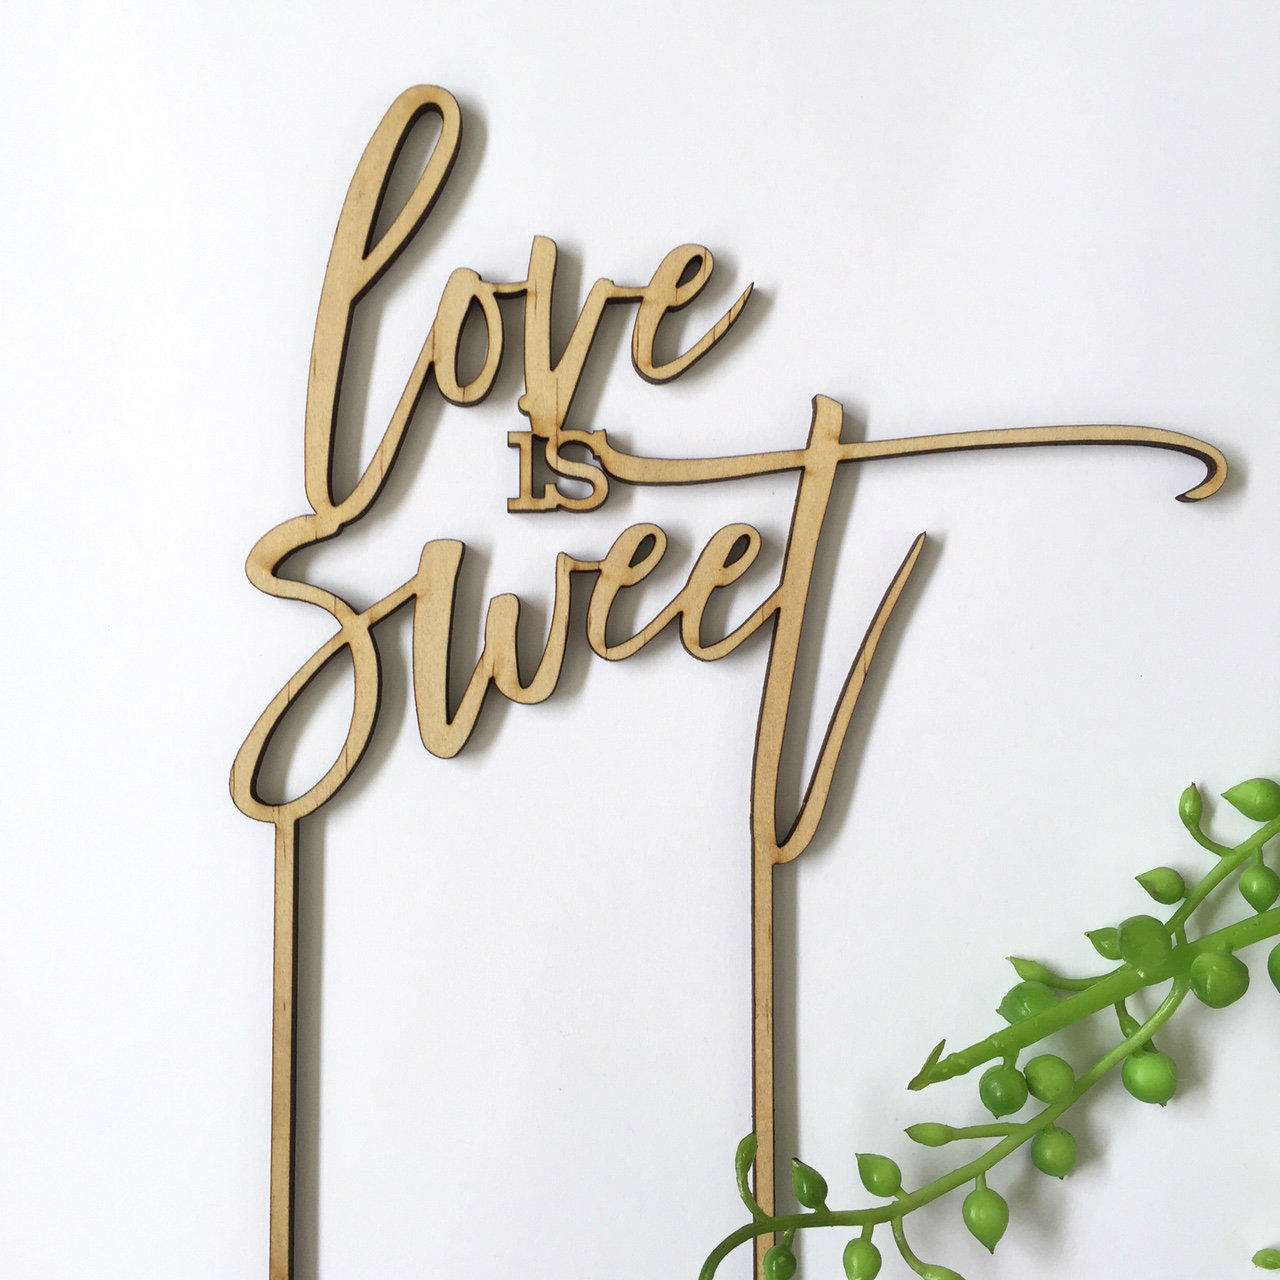 Love is sweet - Engagement Anniversary- Wood Cake Topper / wooden topper